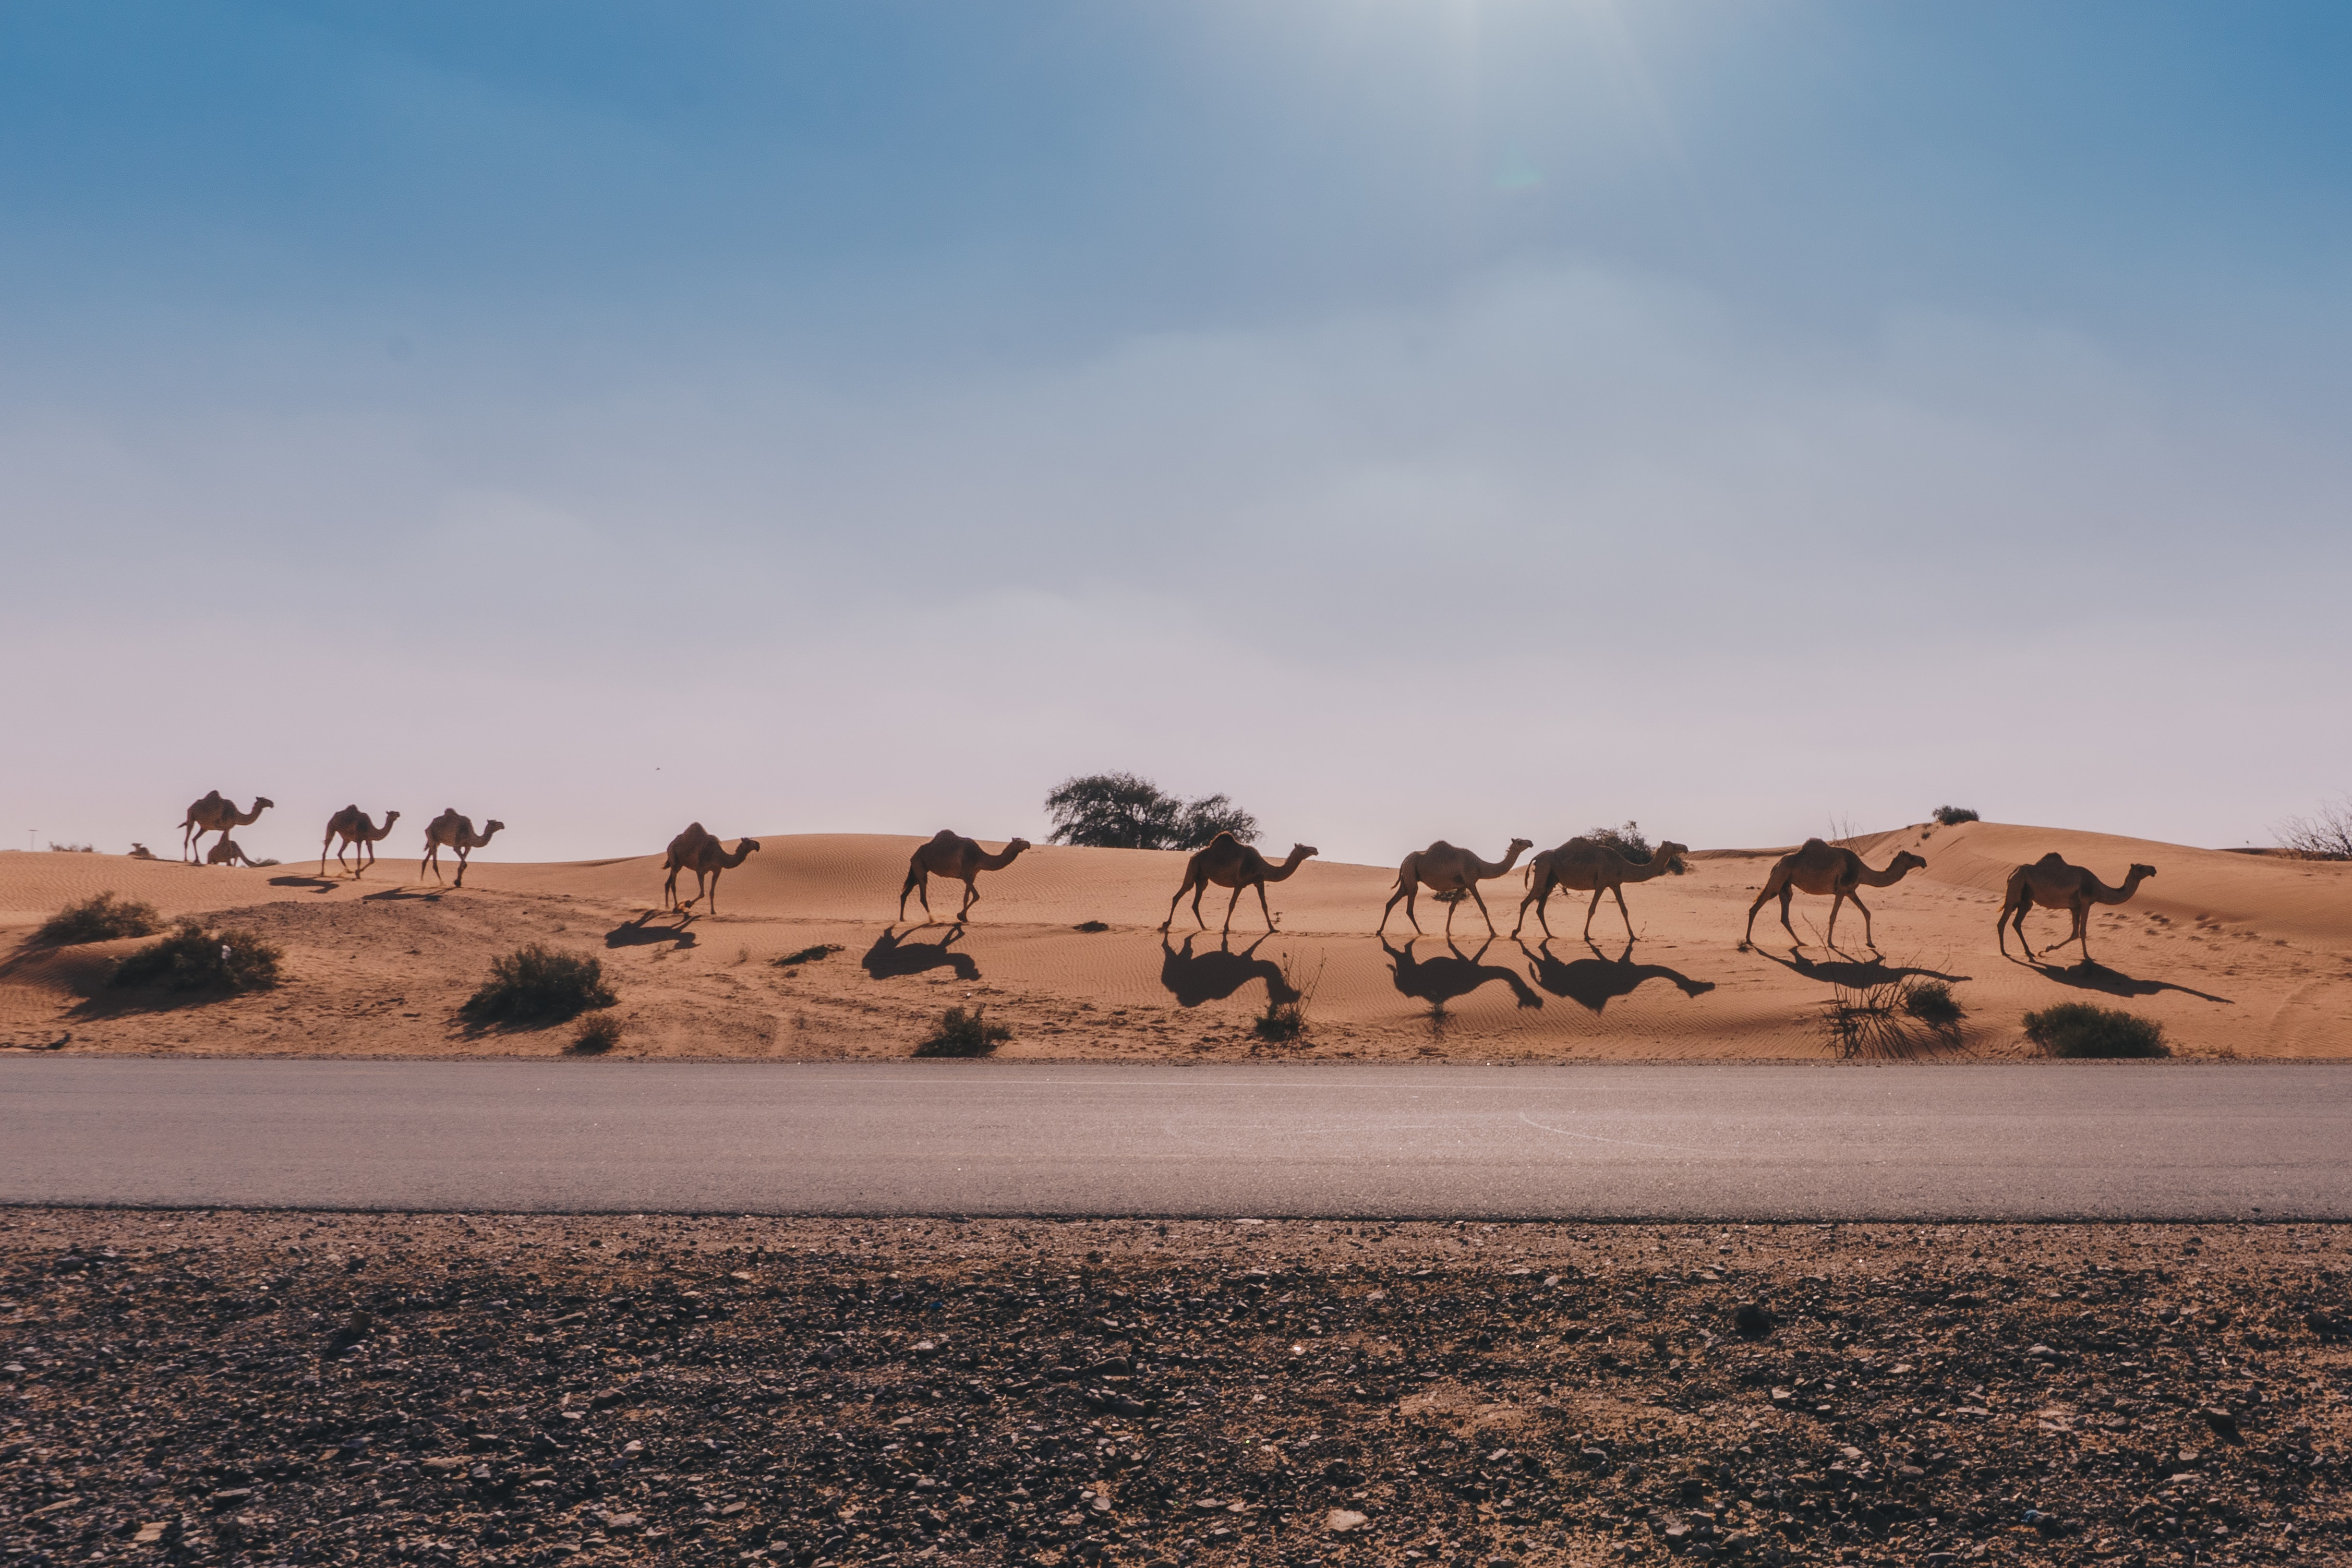 A herd of camel walking in a line along the side of the road in a desert area